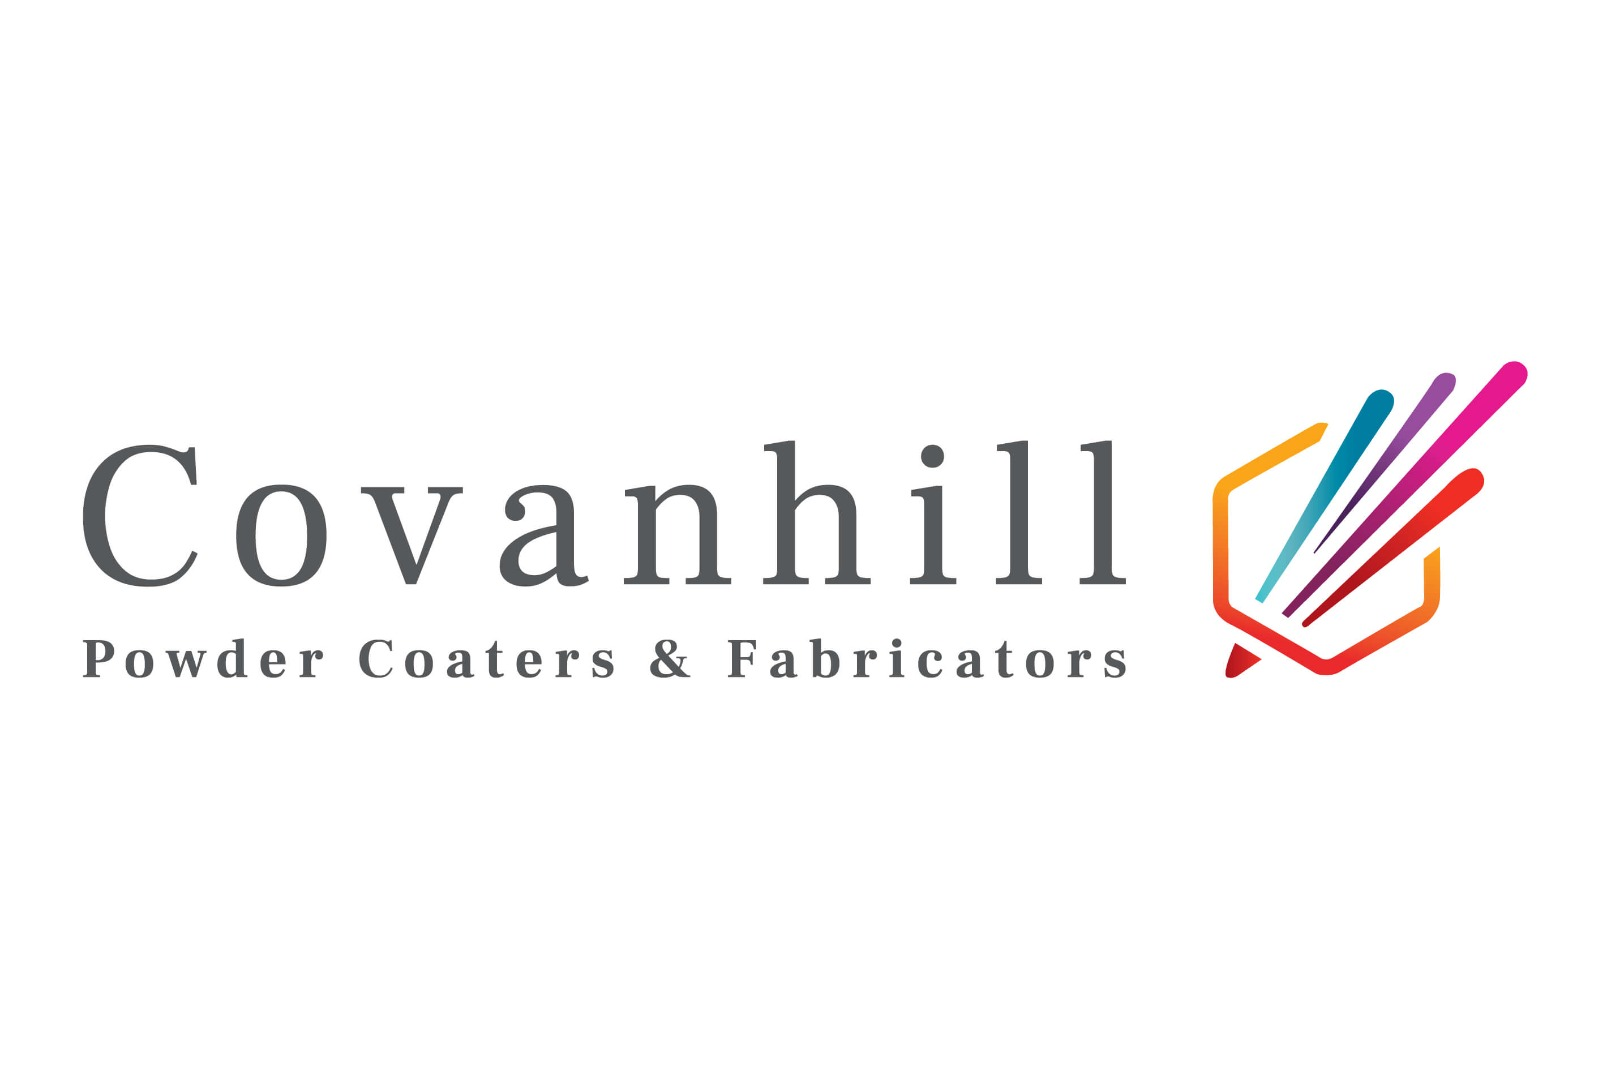 Covanhill Powder Coaters Logo   Toolkit Websites Logo Design Services